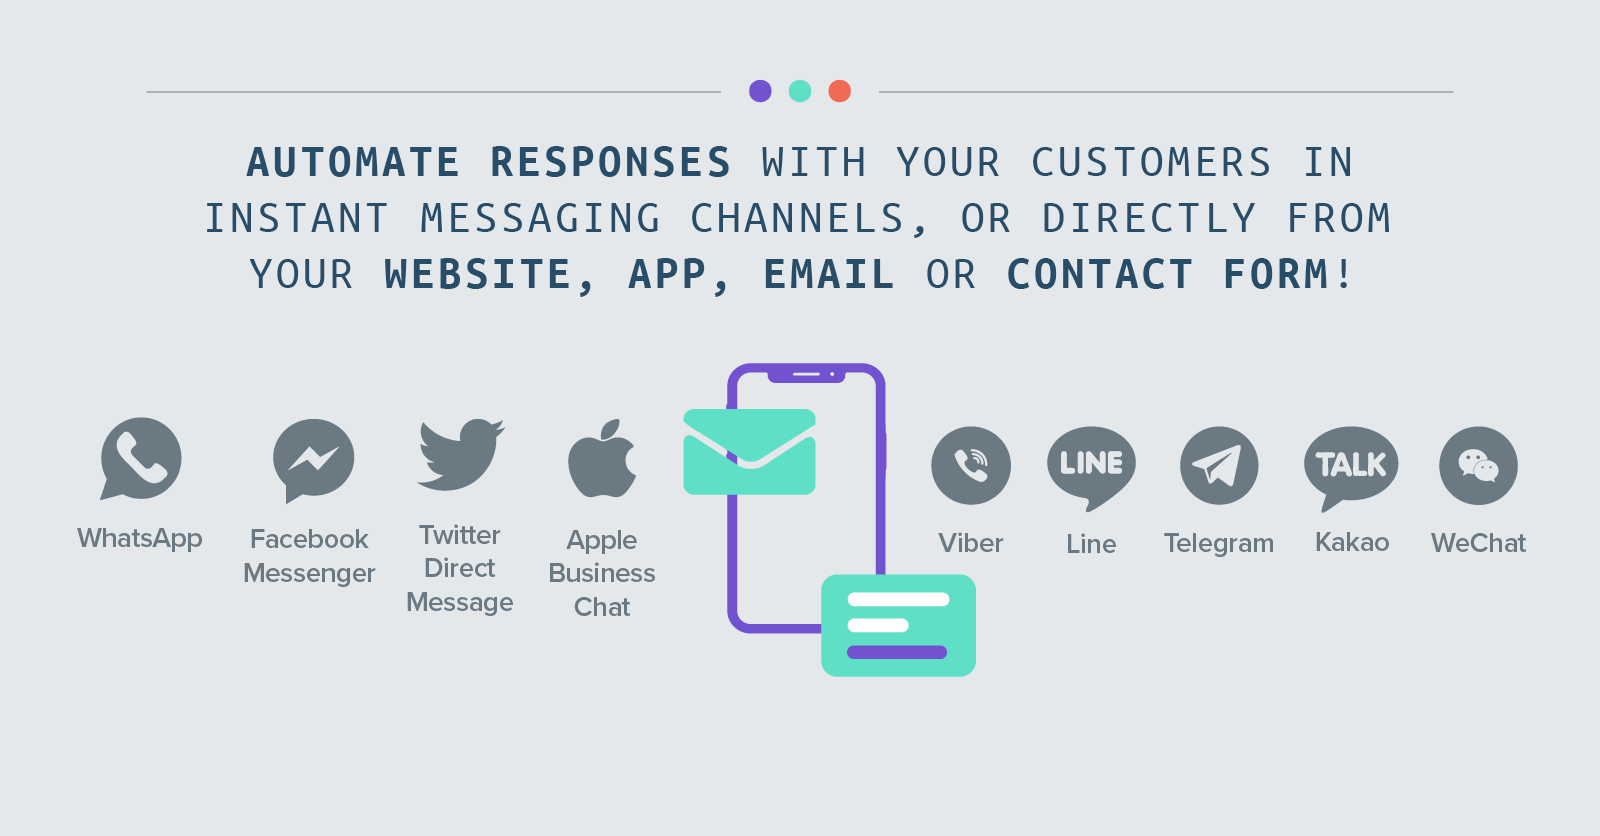 Automate responses with your customers in Instant Messaging channels (including WhatsApp, Facebook Messenger, Twitter Direct Message, Apple Business Chat, Viber, Line, Telegram, Kakao and WeChat), or directly from your website, app, email or contact form!